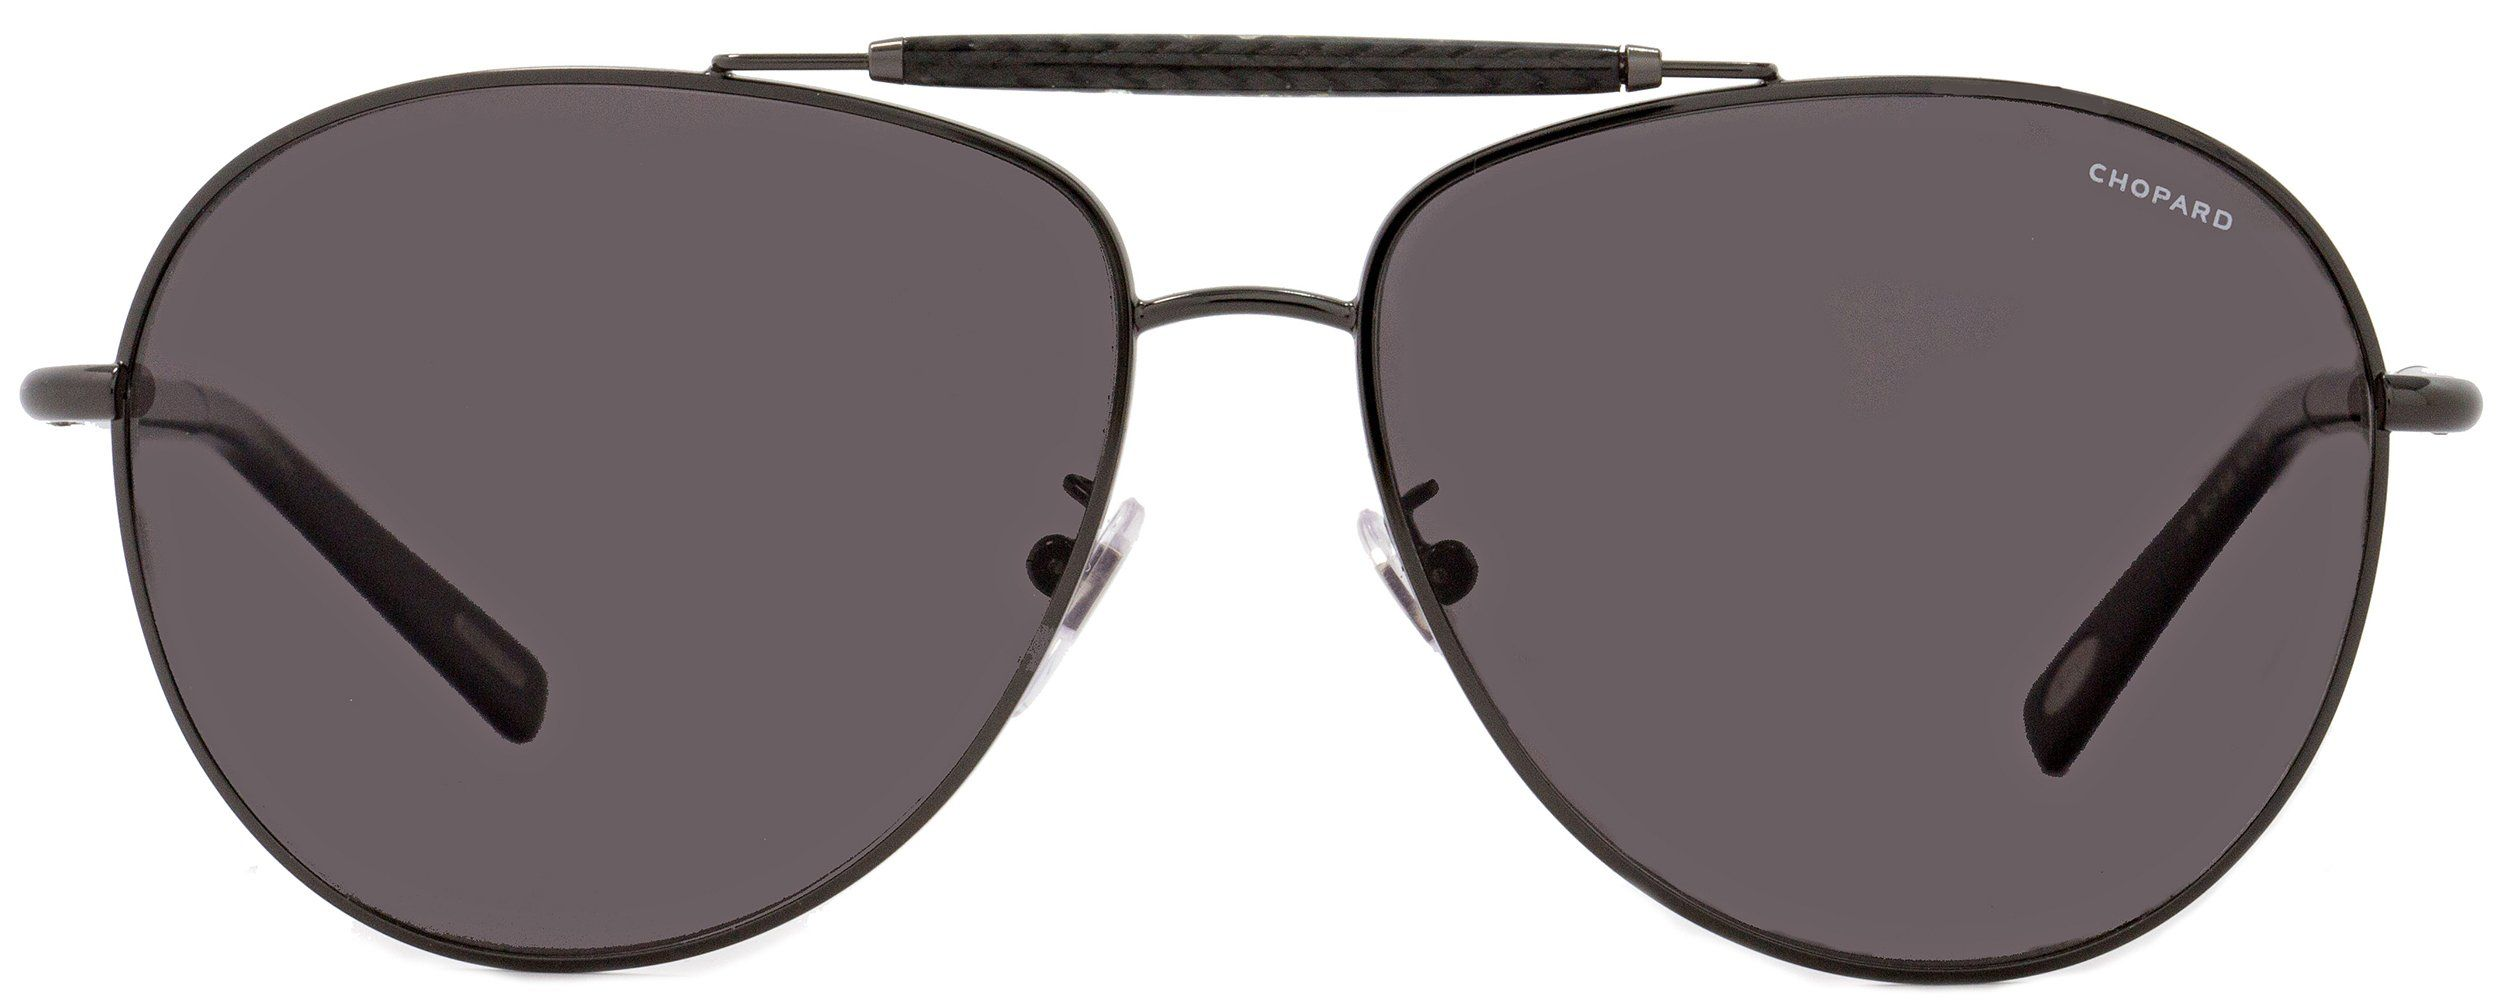 95e98d887a Chopard Aviator Sunglasses SCHB36 568P Shiny Bakelite Polarized B36 -- For  more information